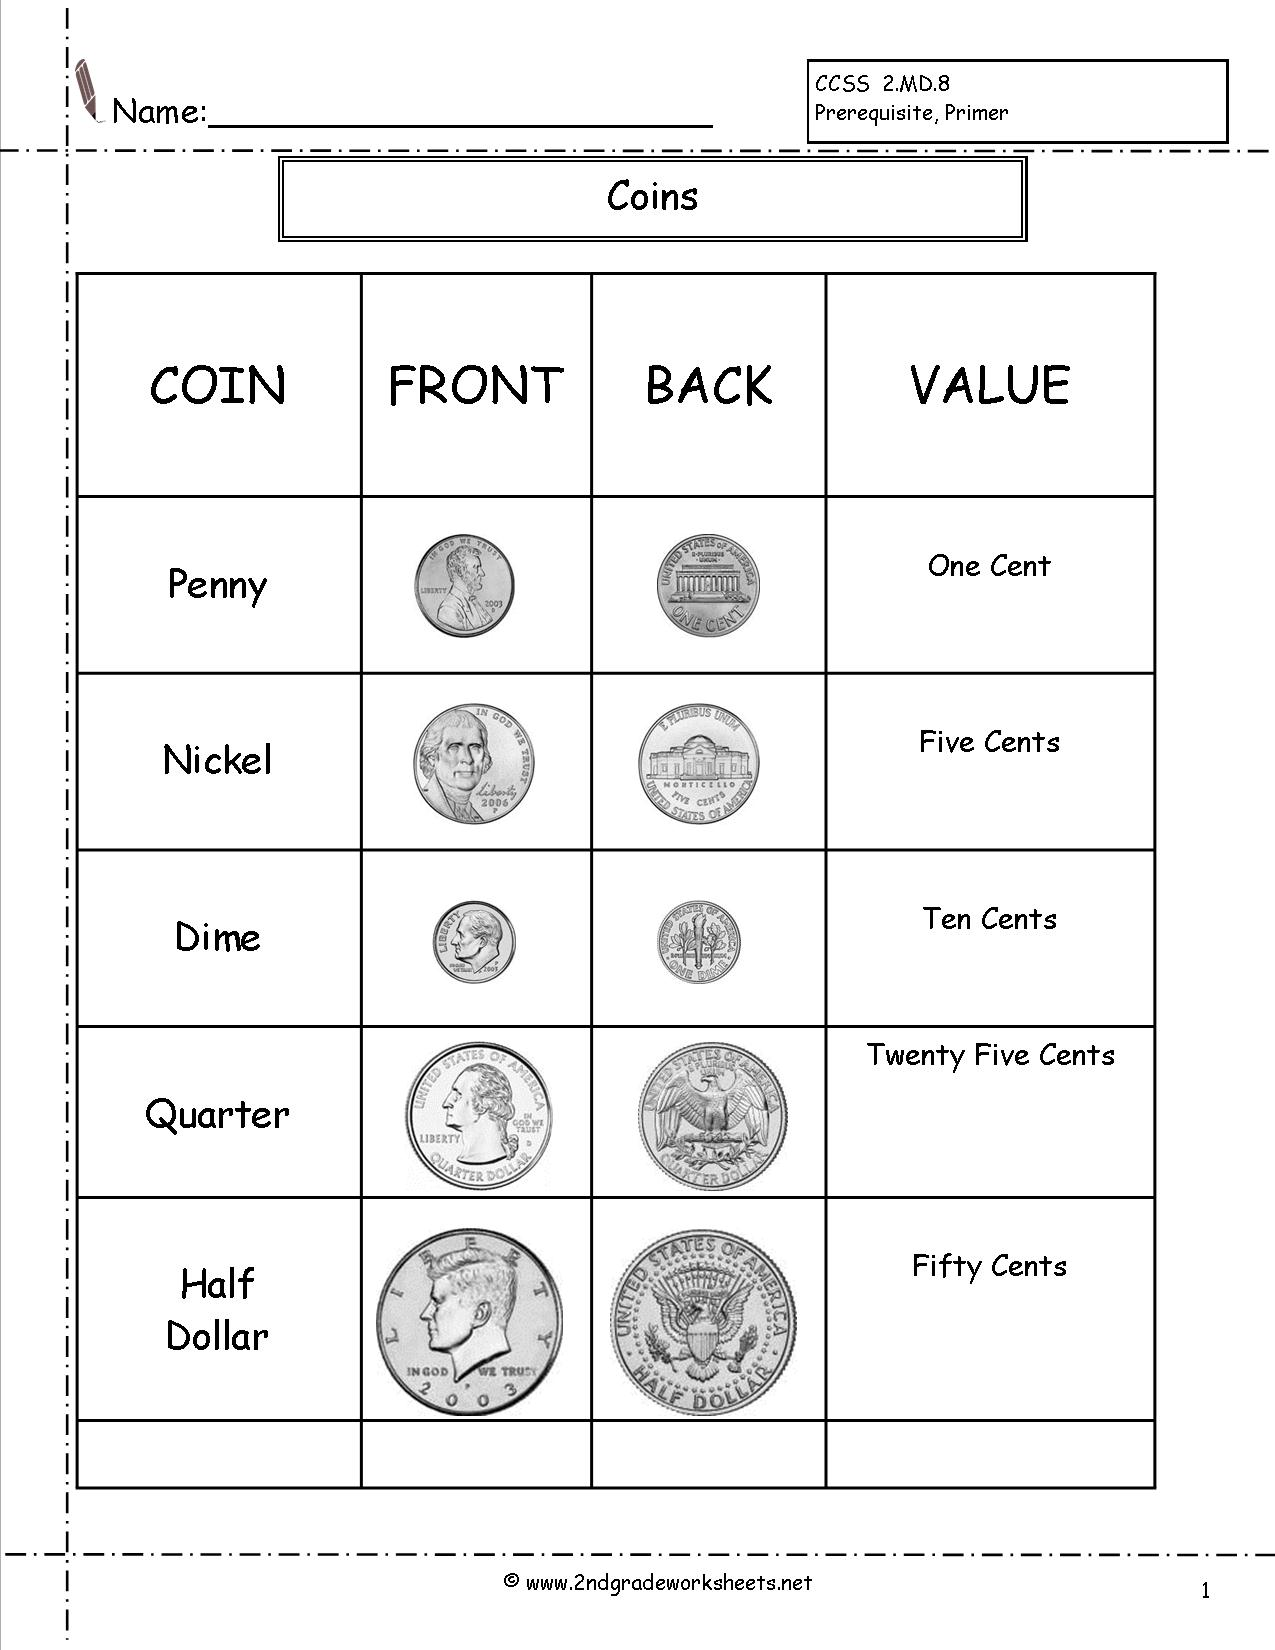 hight resolution of Do It Now Money Counting Worksheets 2nd Grade   Printable Worksheets and  Activities for Teachers